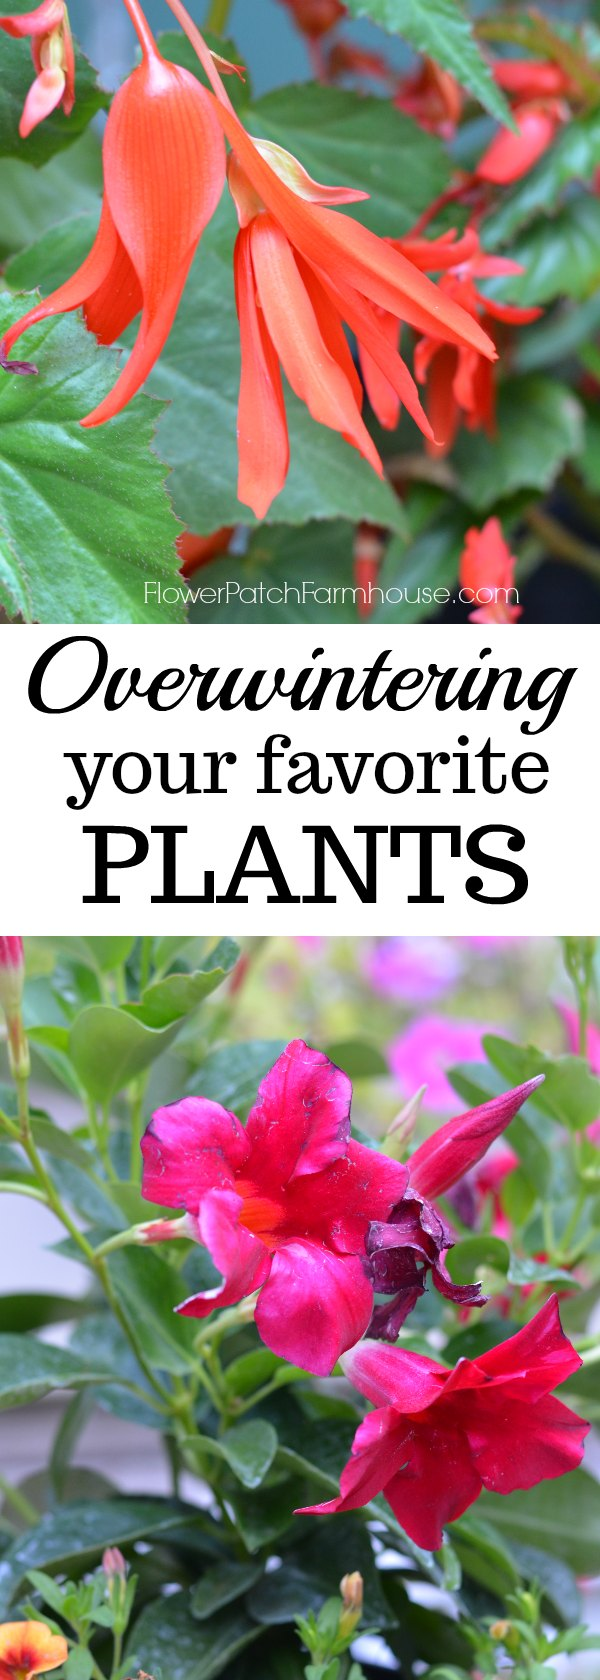 Over winter some of your favorite plants, come see how I treat them before bringing them in to keep them healthy and happy through the cold winter months and even get some blooms!